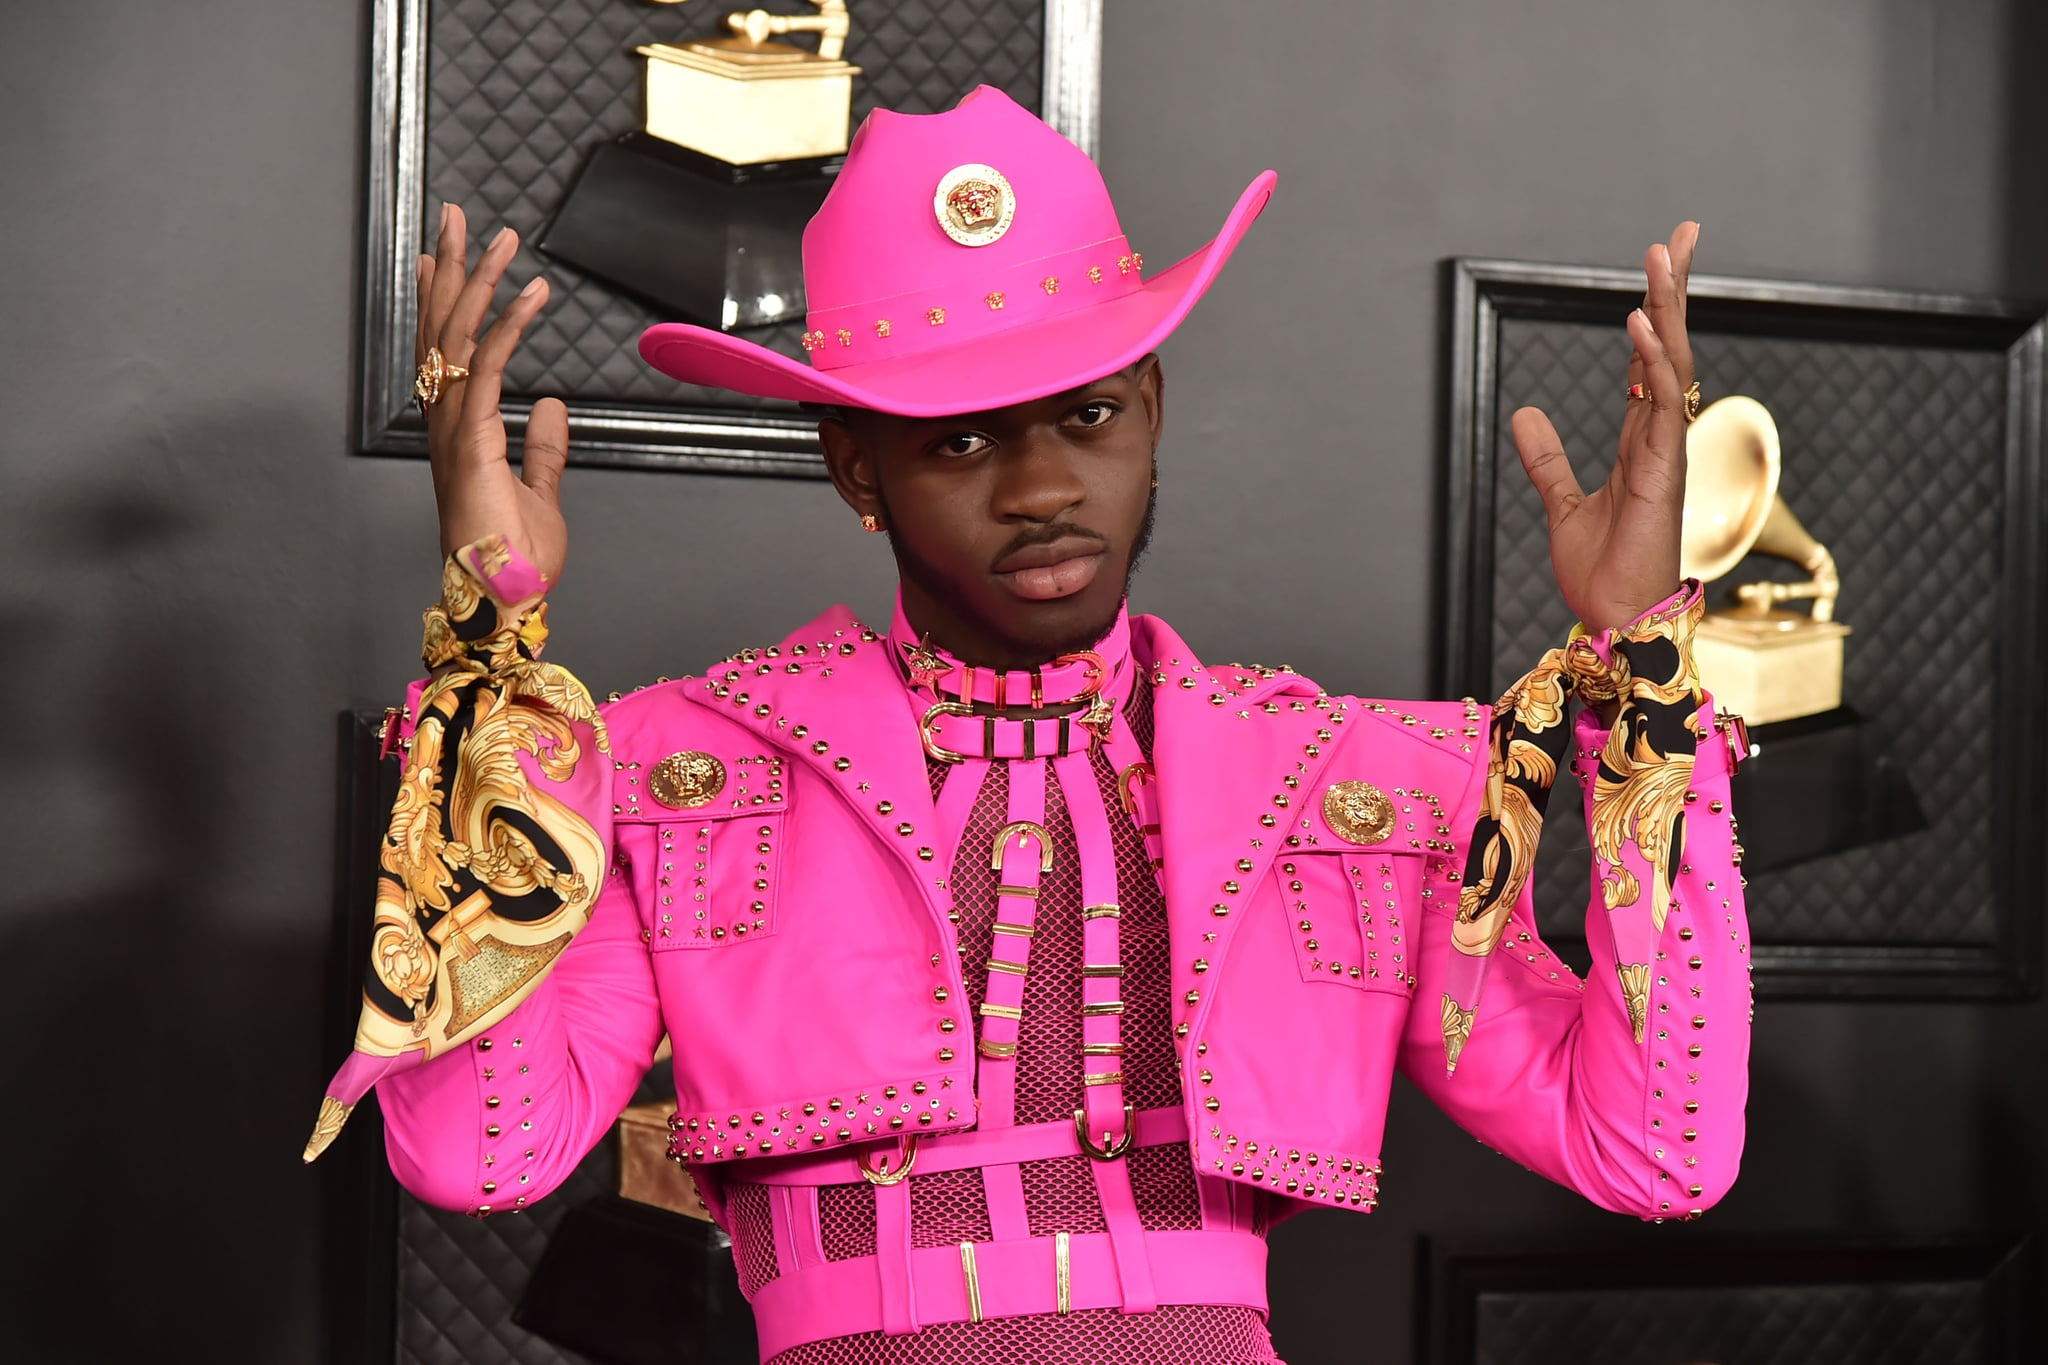 LOS ANGELES, CA - JANUARY 26: Lil Nas X attends the 62nd Annual Grammy Awards at Staples Center on January 26, 2020 in Los Angeles, CA. (Photo by David Crotty/Patrick McMullan via Getty Images)